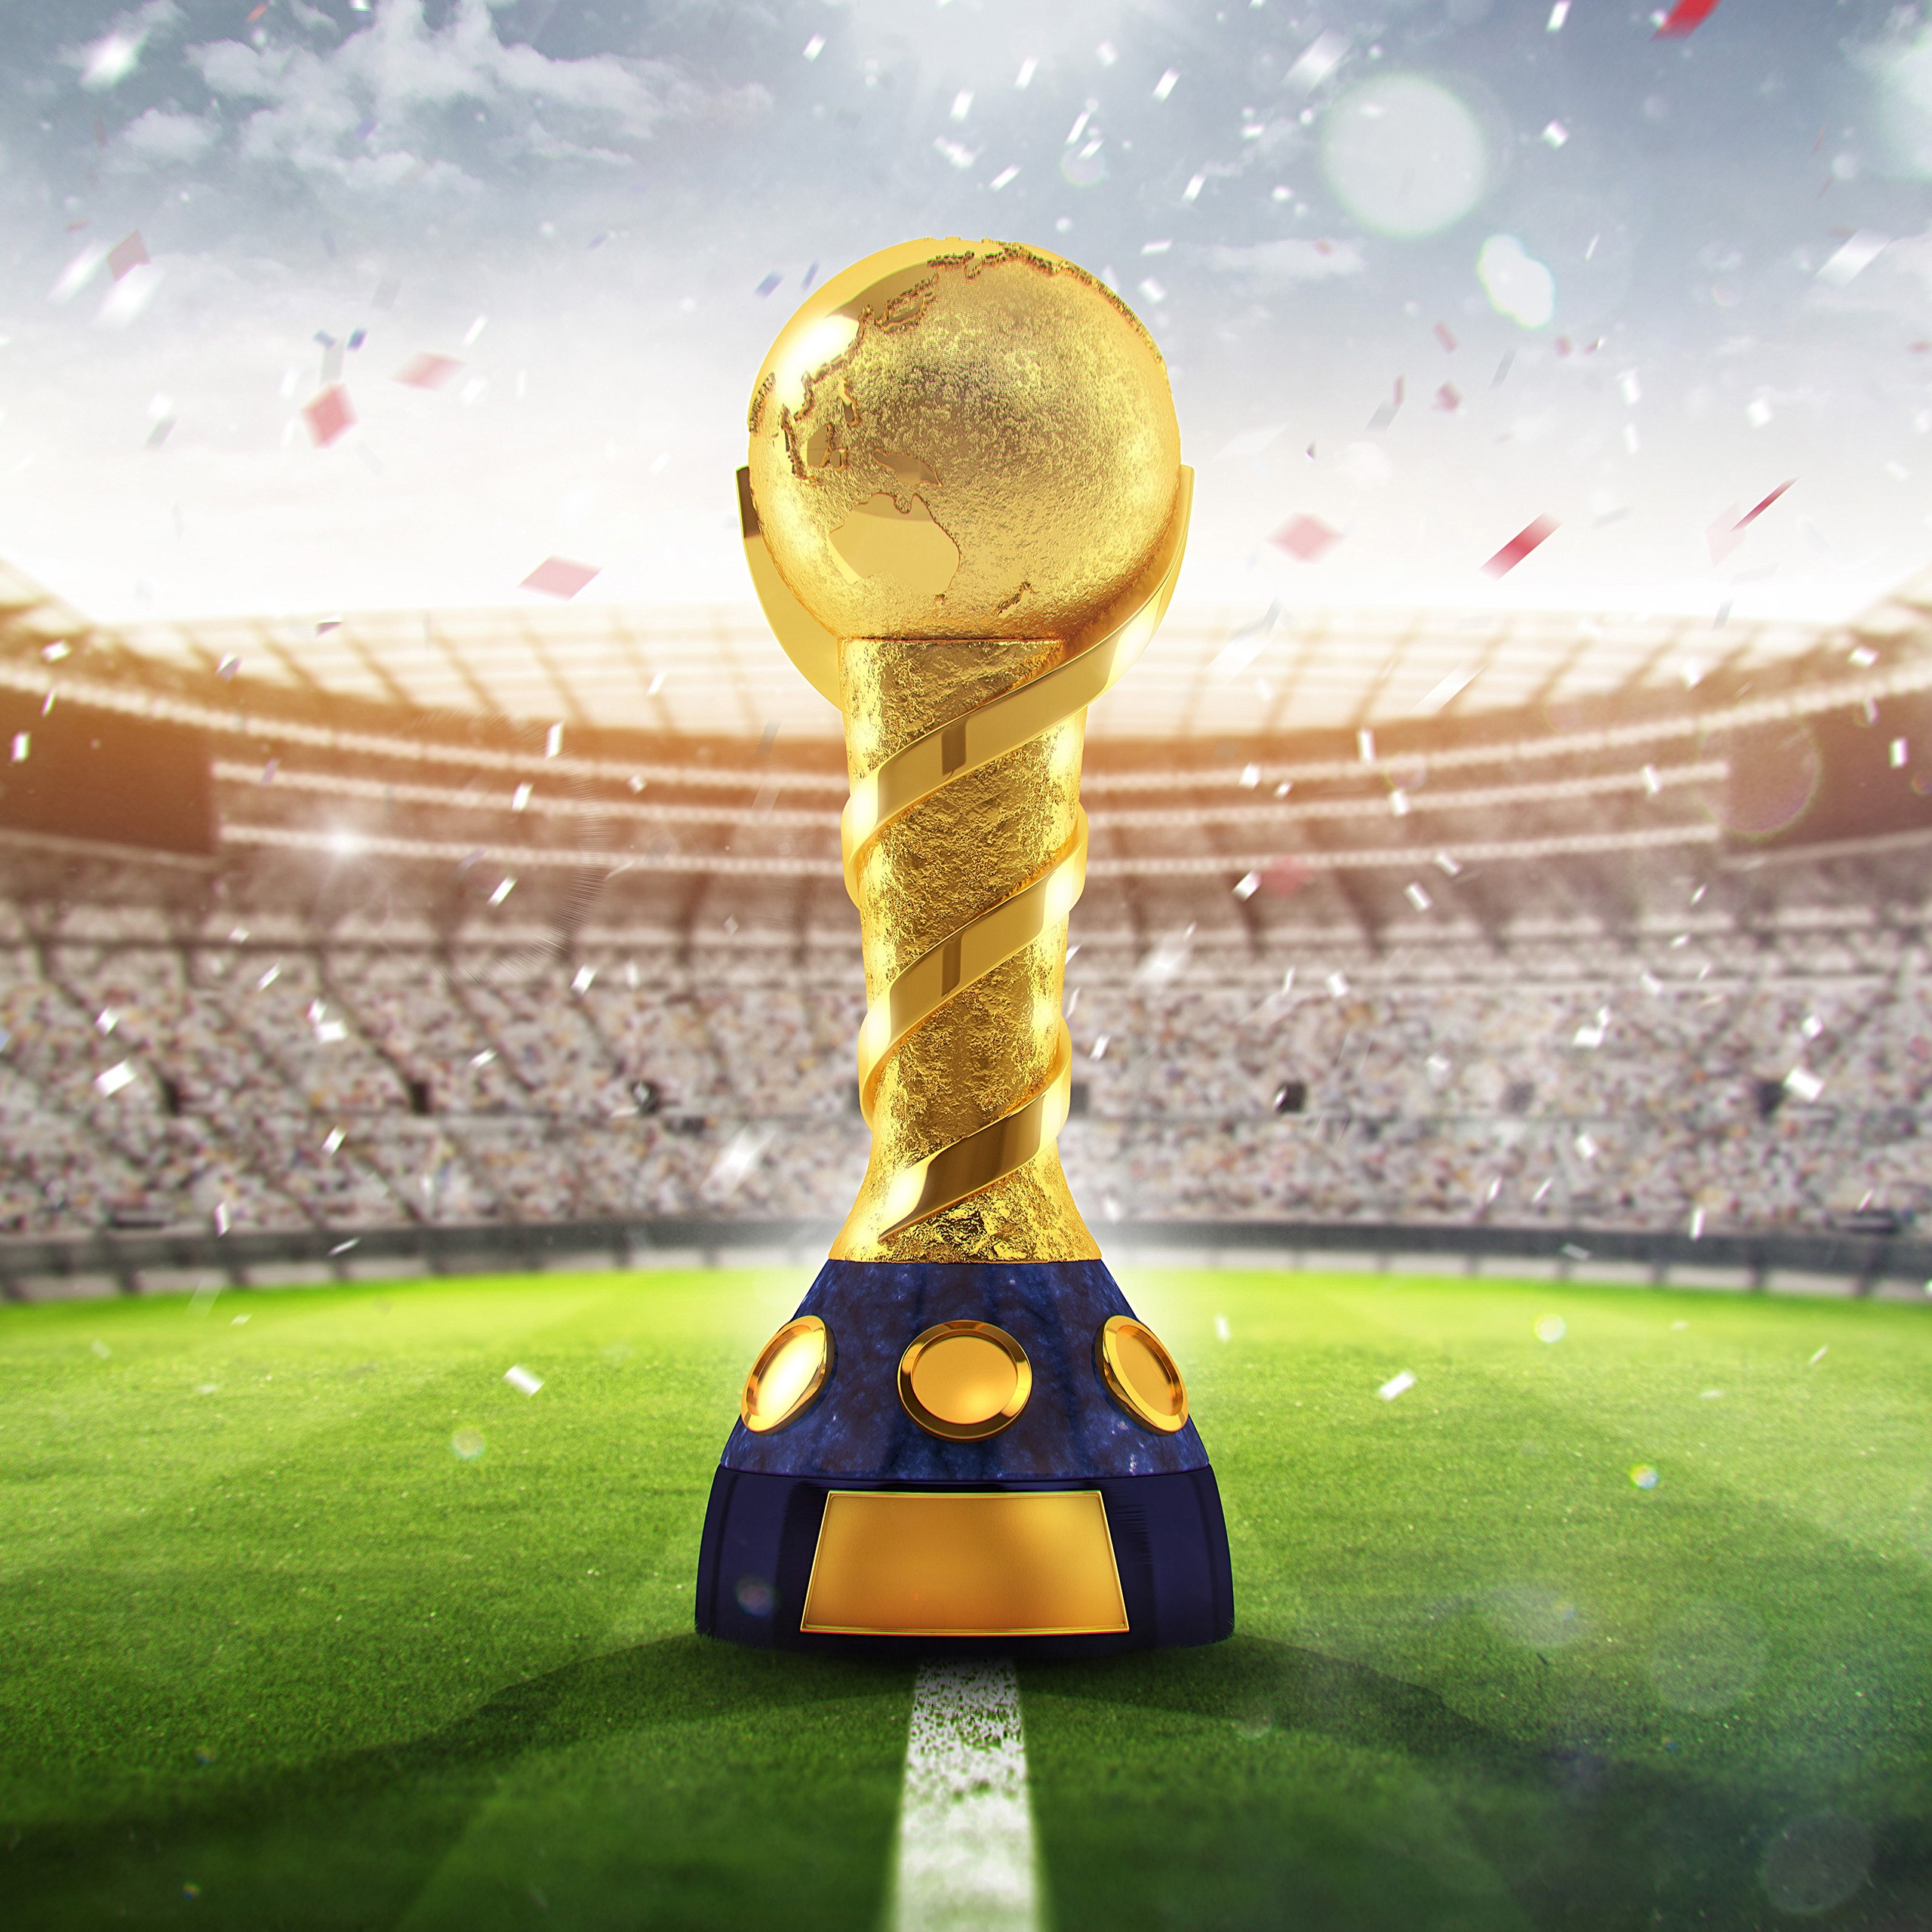 2018 fifa world cup russia golden trophy 4k 8k wallpapers